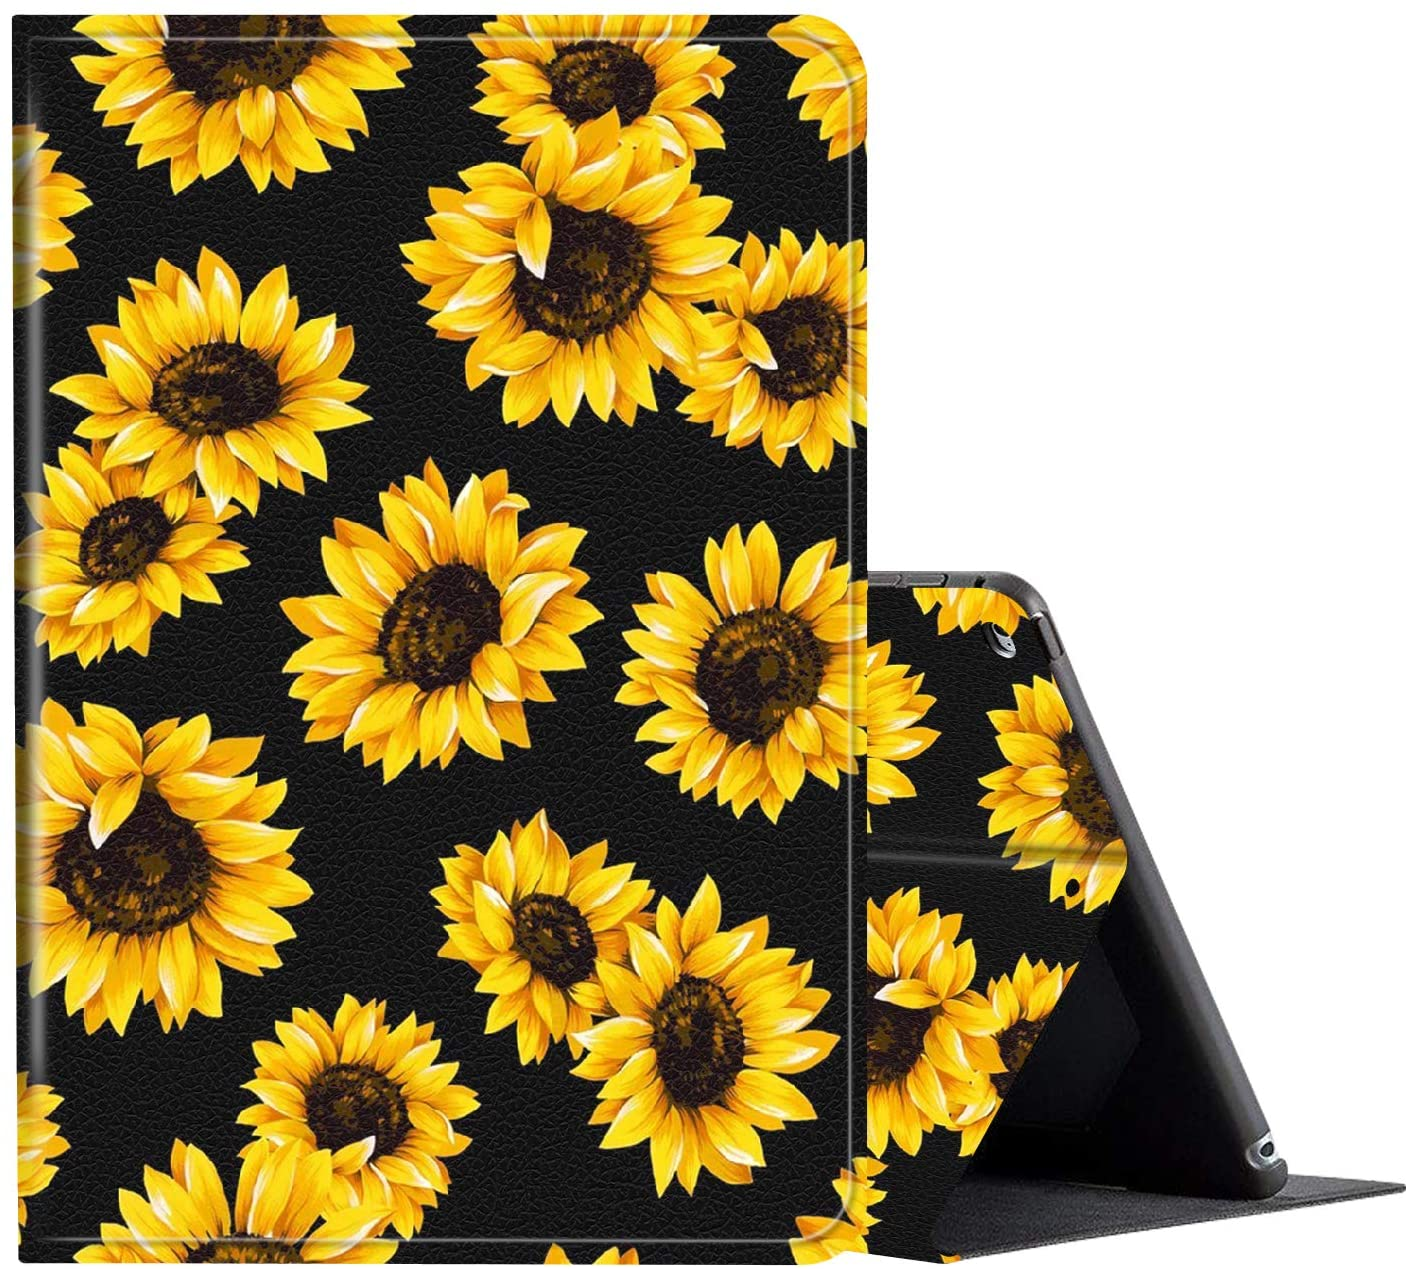 IPad 10.2 Inch 2019 Case, AMOOK PU Leather Adjustable Stand Cover Protection with Auto Wake/Sleep Smart Cover for Apple iPad 7th Gen-Vintage Sunflower